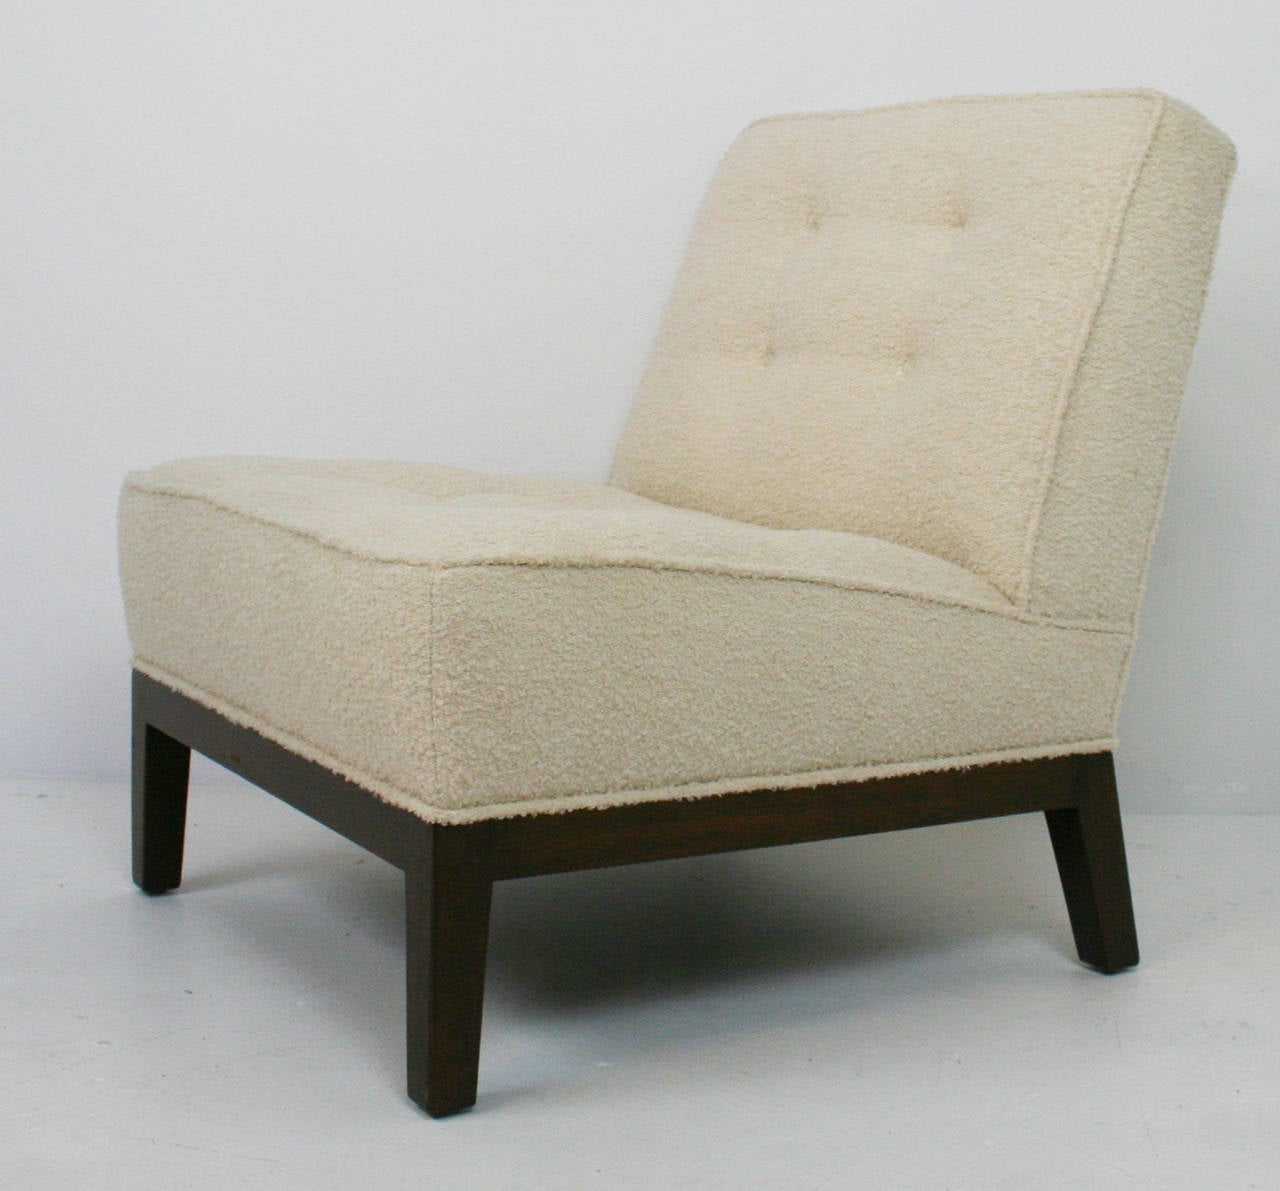 Slipper chairs slipper chairs by pierre lottier for for Slipper chair